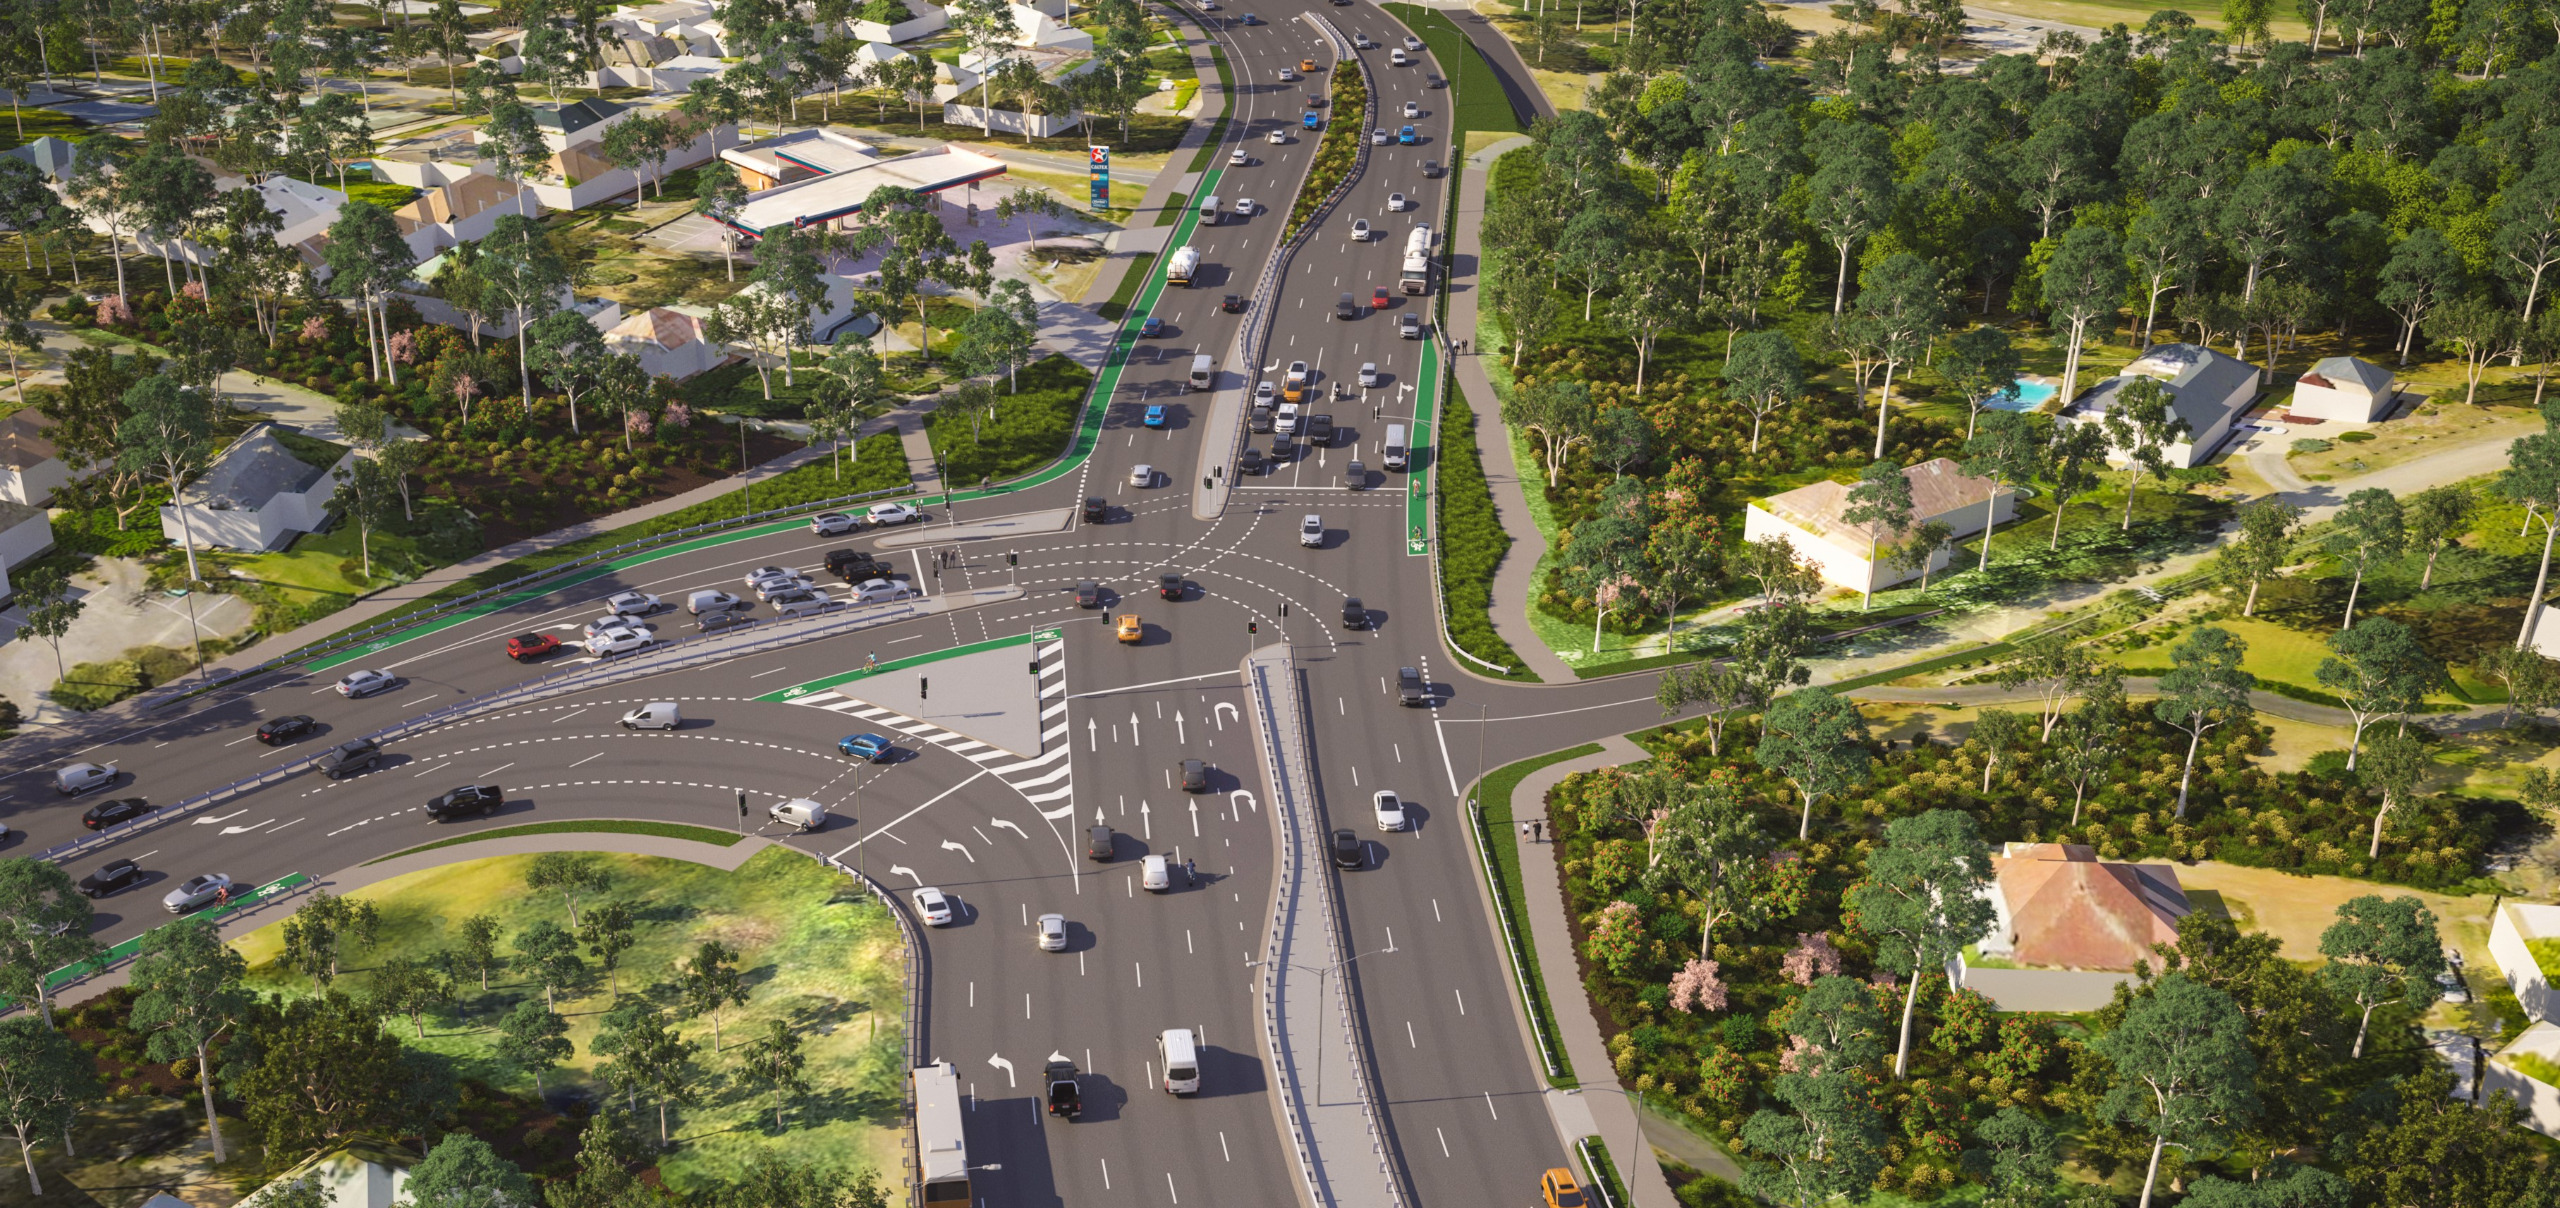 Image of an artist's impression of the aerial view of the Fitzsimons Lane and Main Road intersection- looking towards Eltham